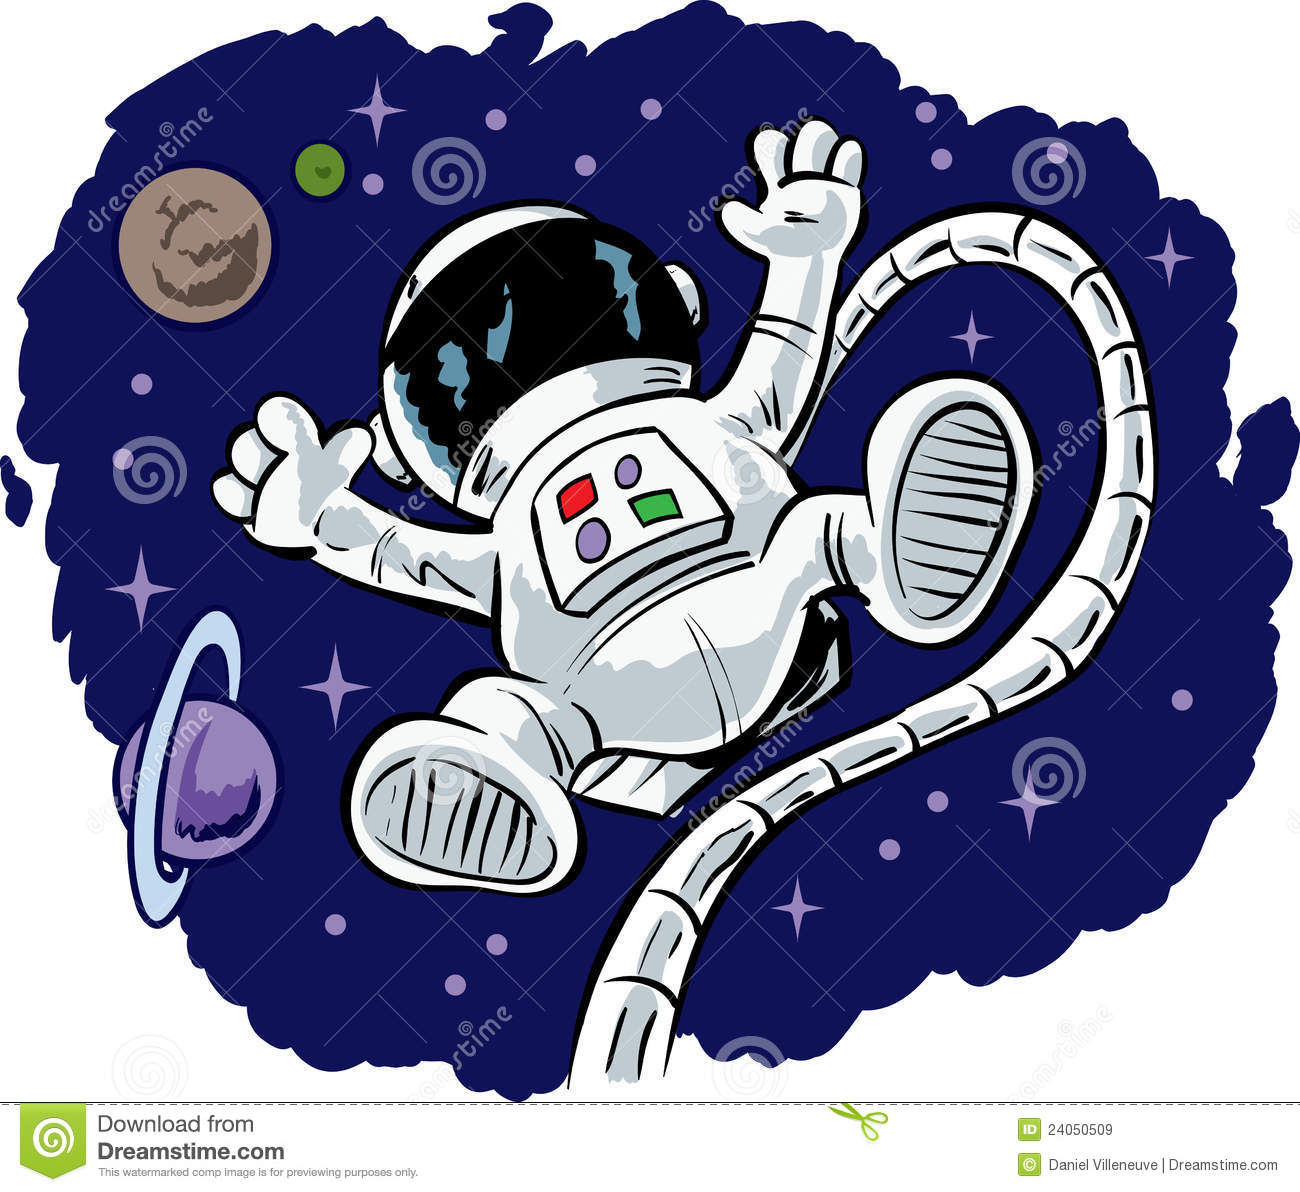 Cute Floating Astronaut Royalty Free Stock Images   Image  24050509